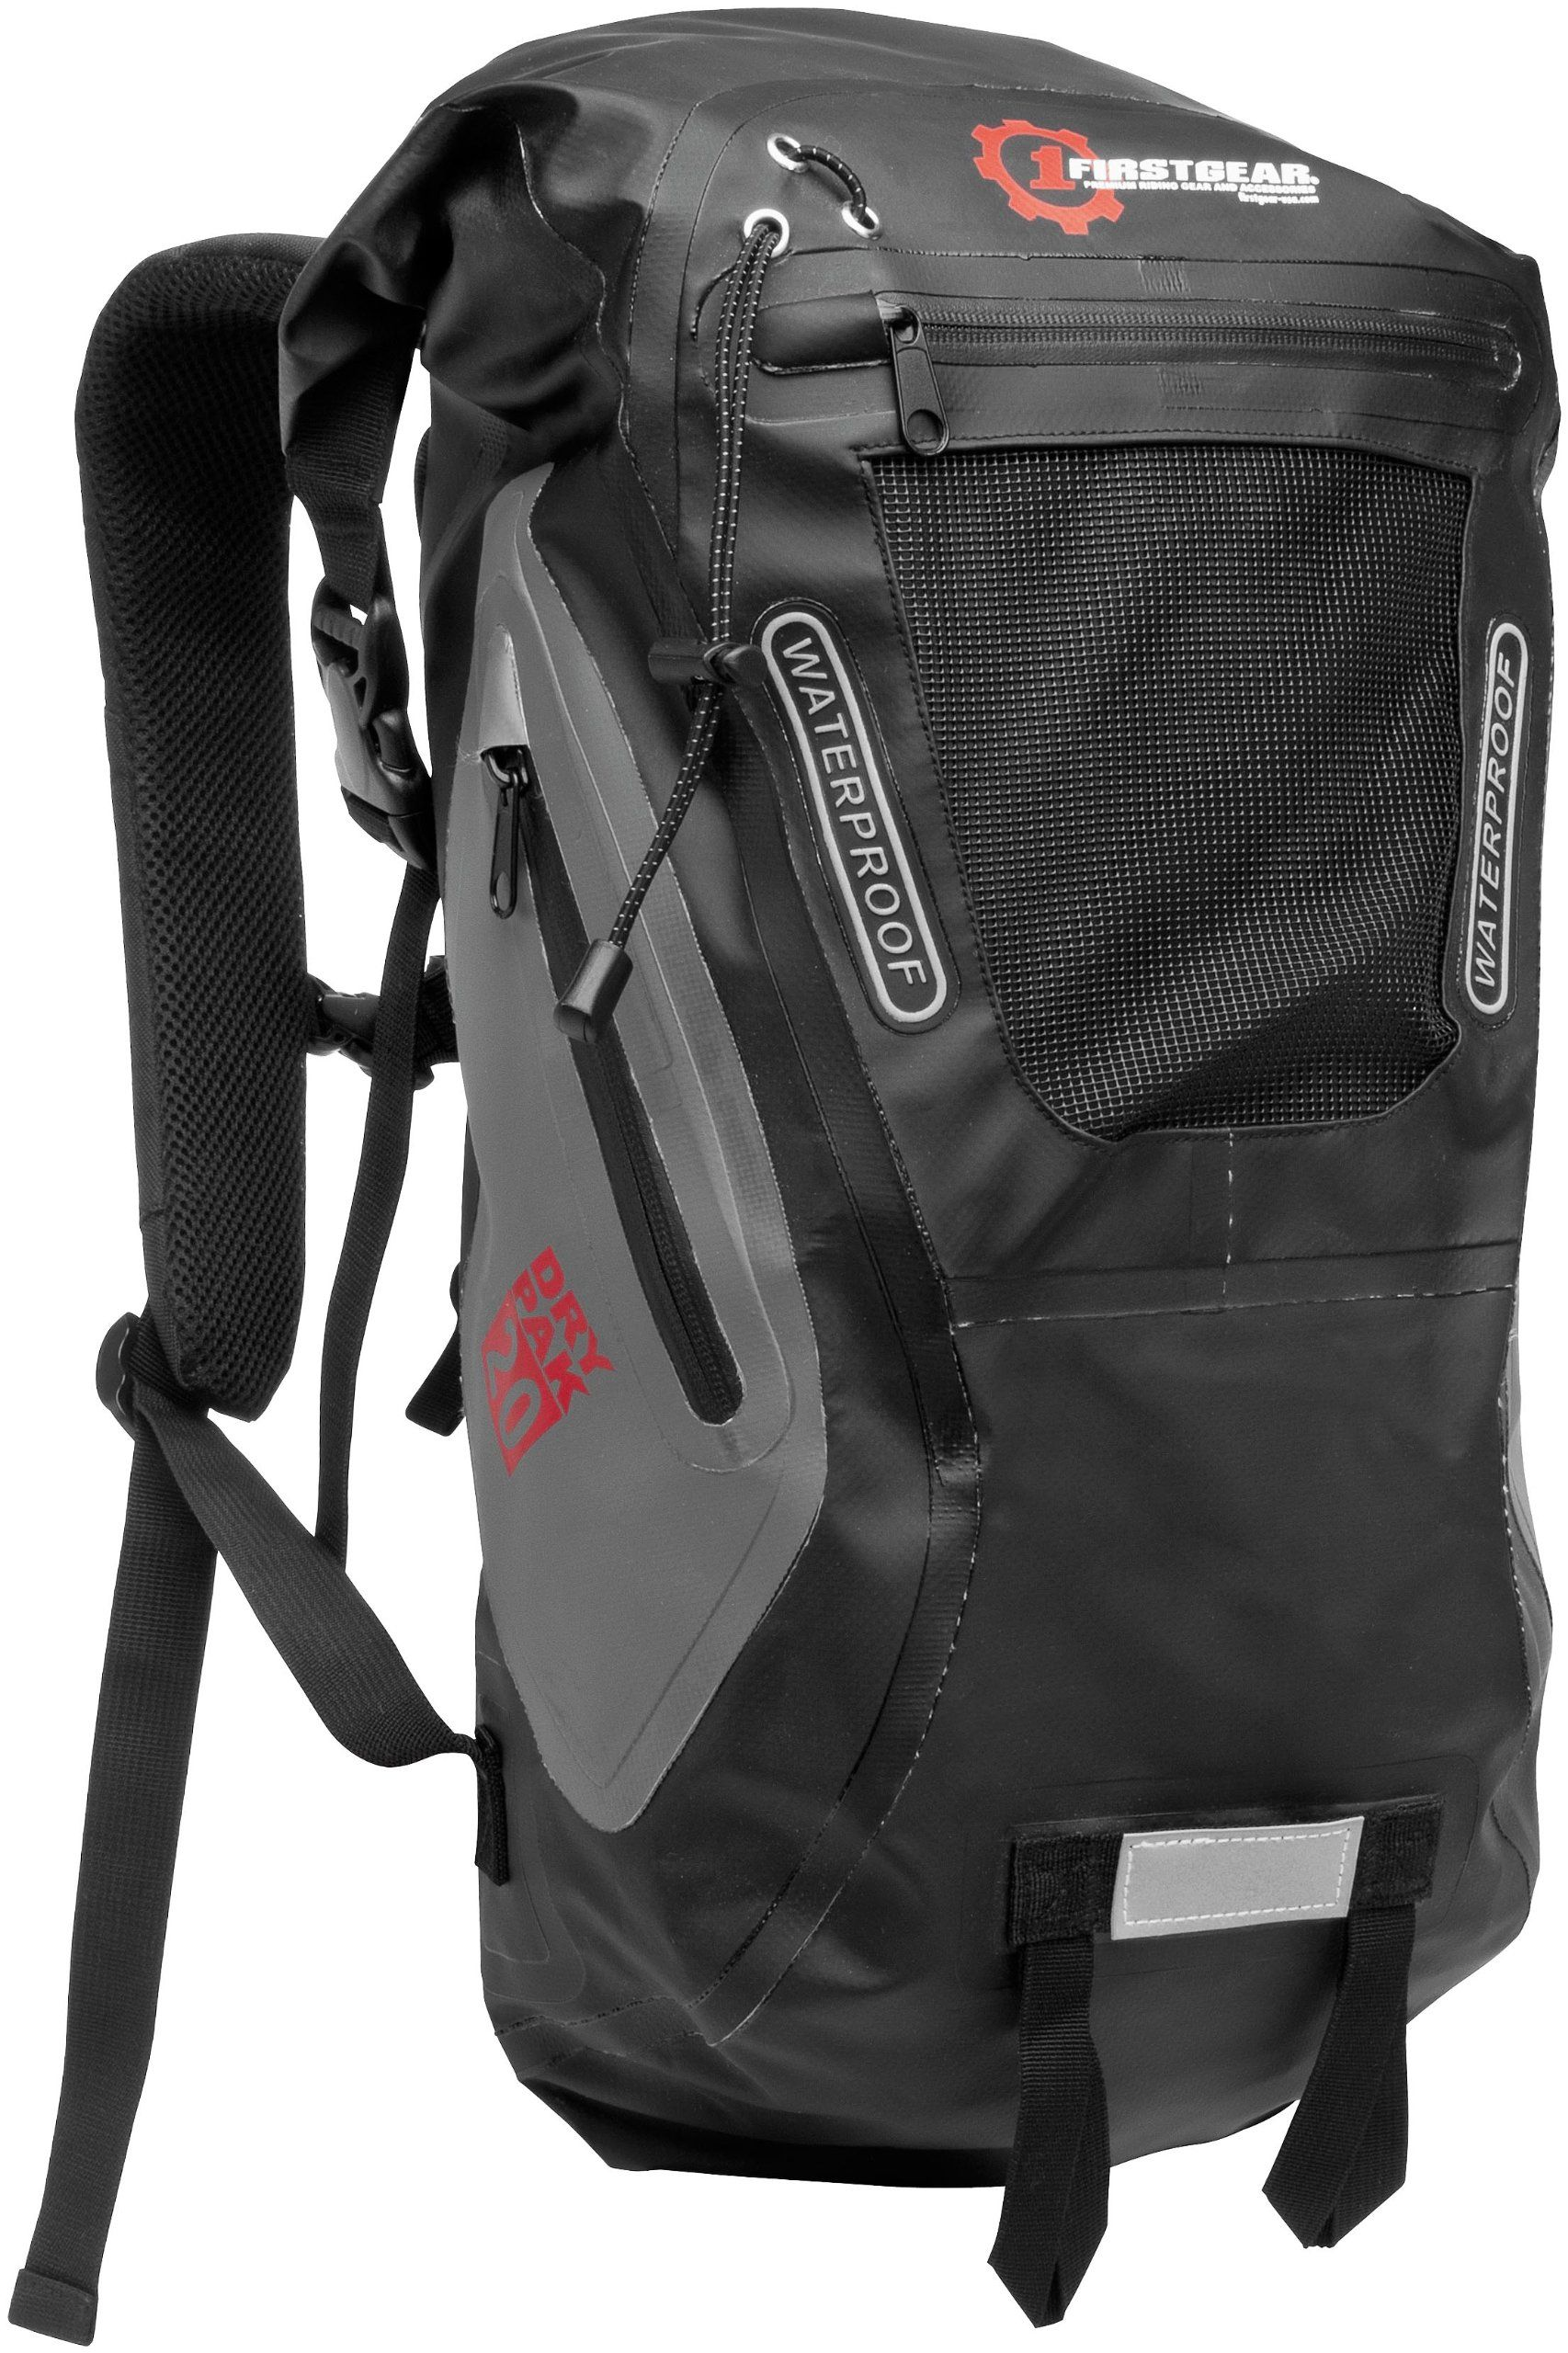 e76f2be48dad Waterproof Backpack Manufacturers- Fenix Toulouse Handball